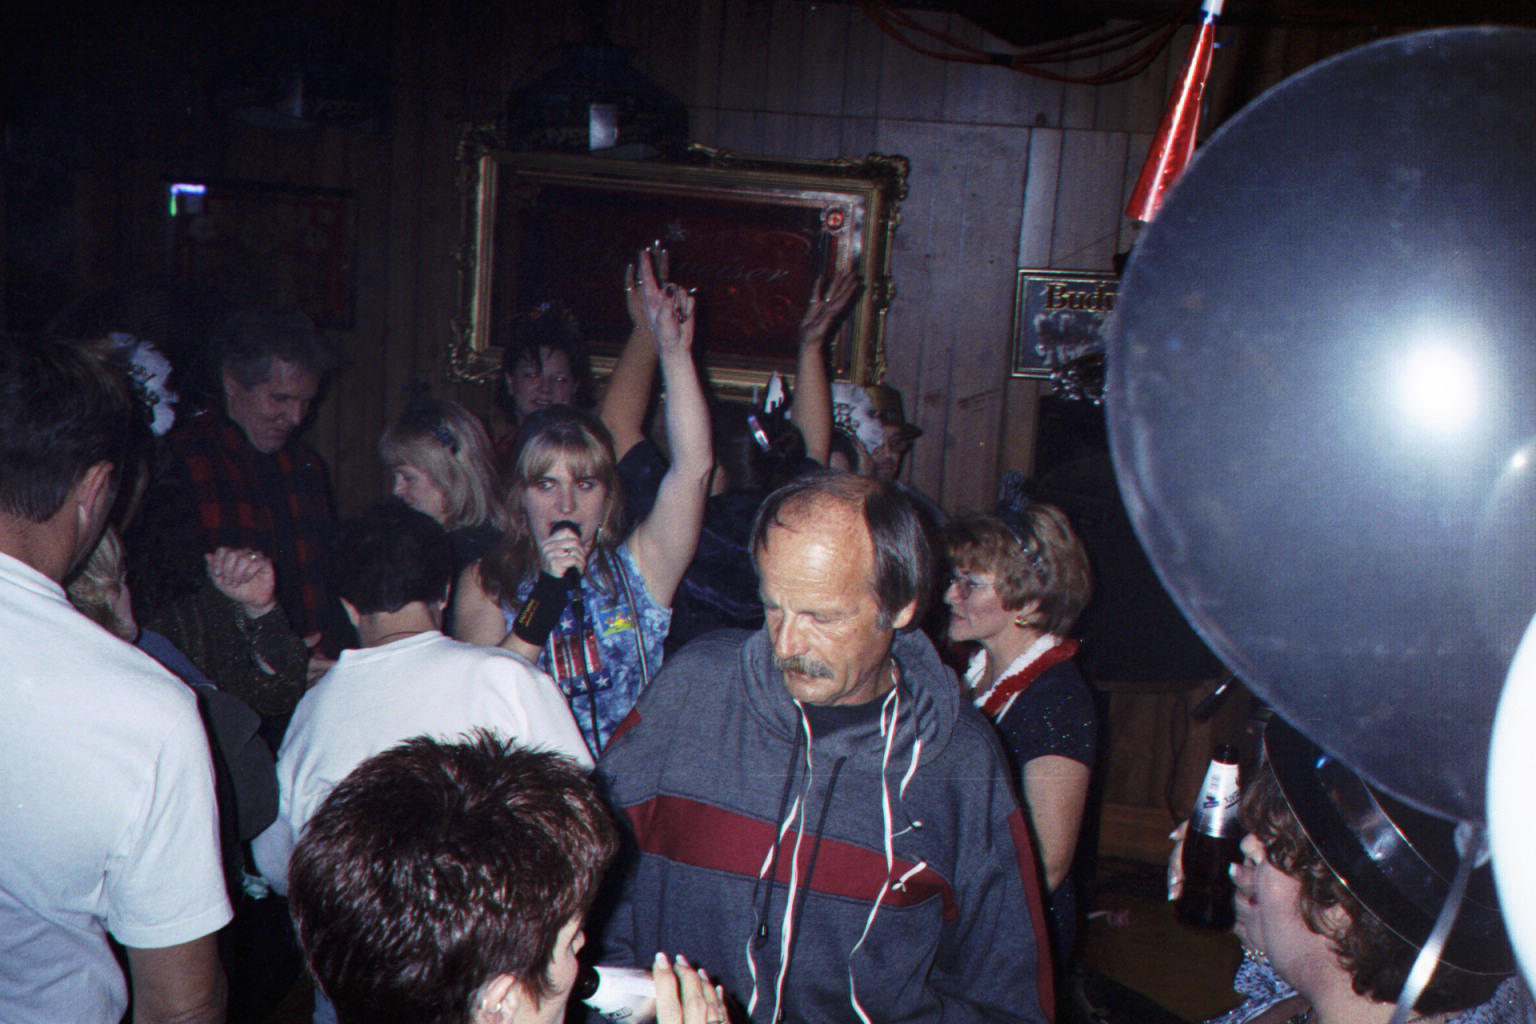 Karen singing on dance floor.jpg (199682 bytes)